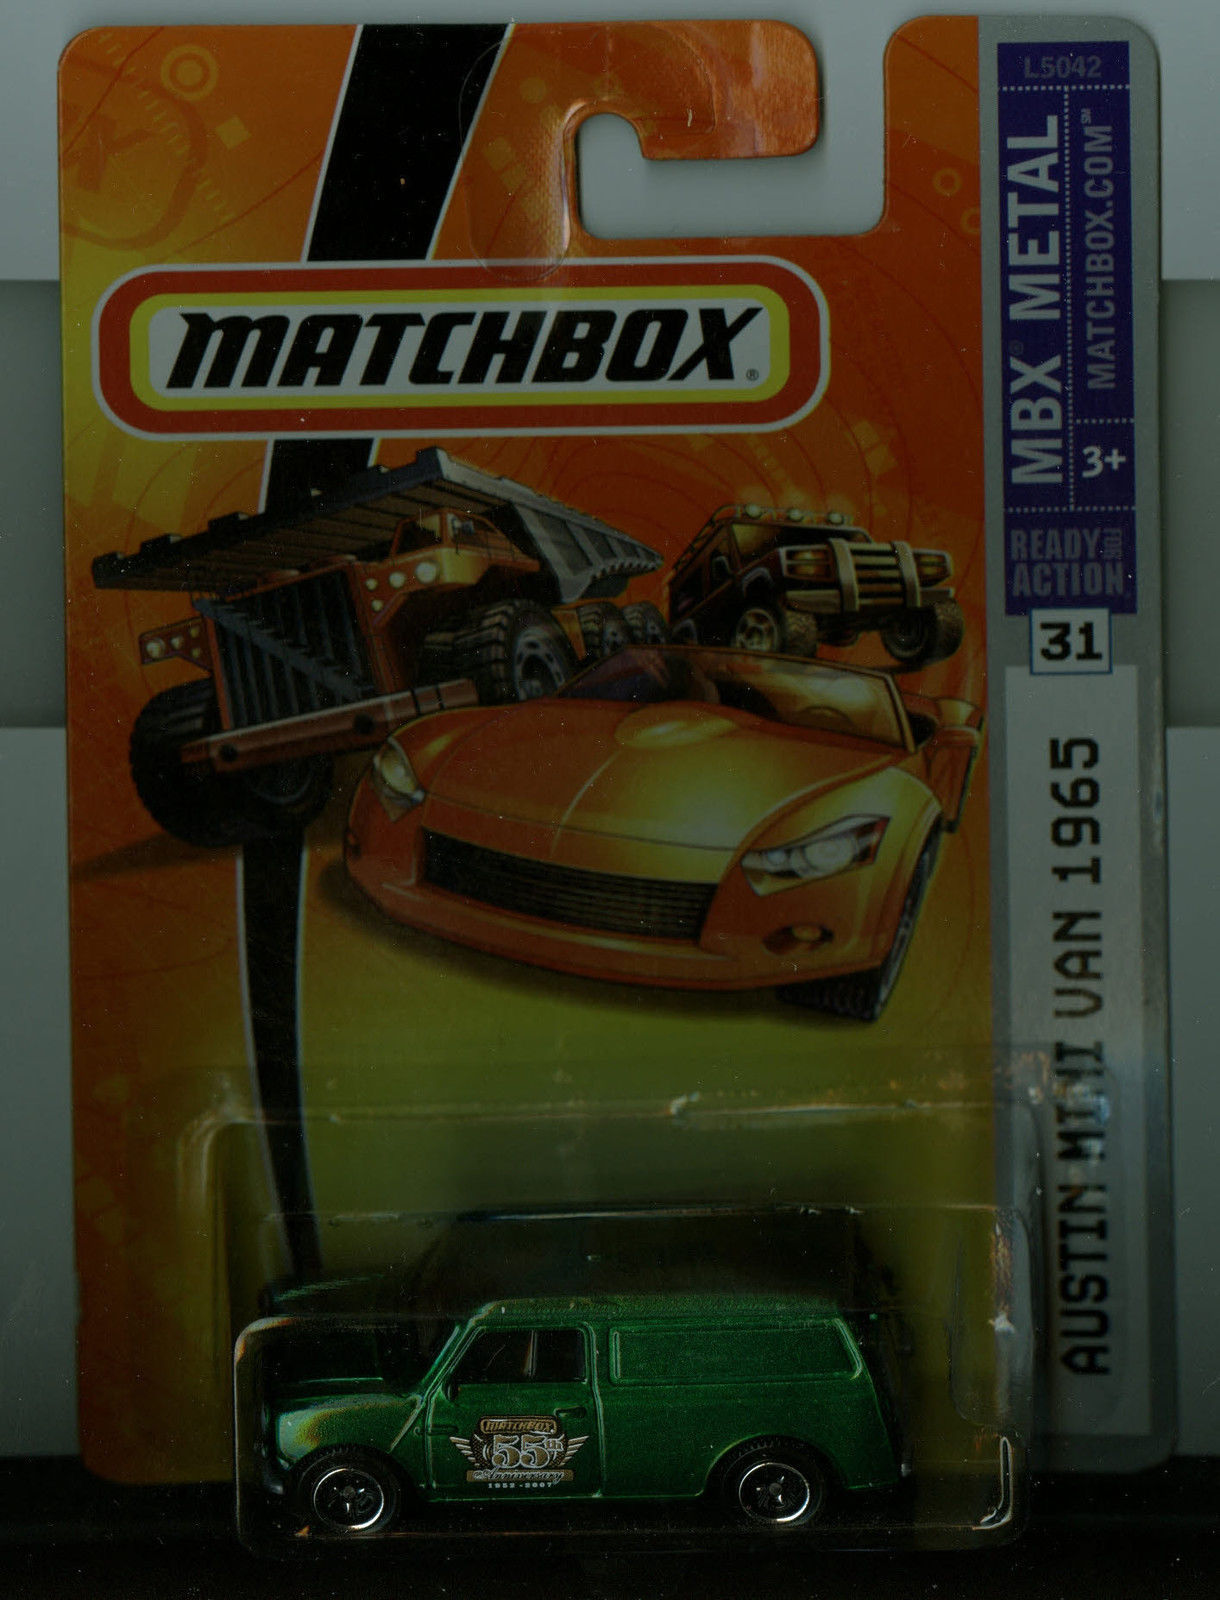 Matchbox 2007 MBX Metal #31 Austin Mini Van Green Limited 55 Anniversary Edition